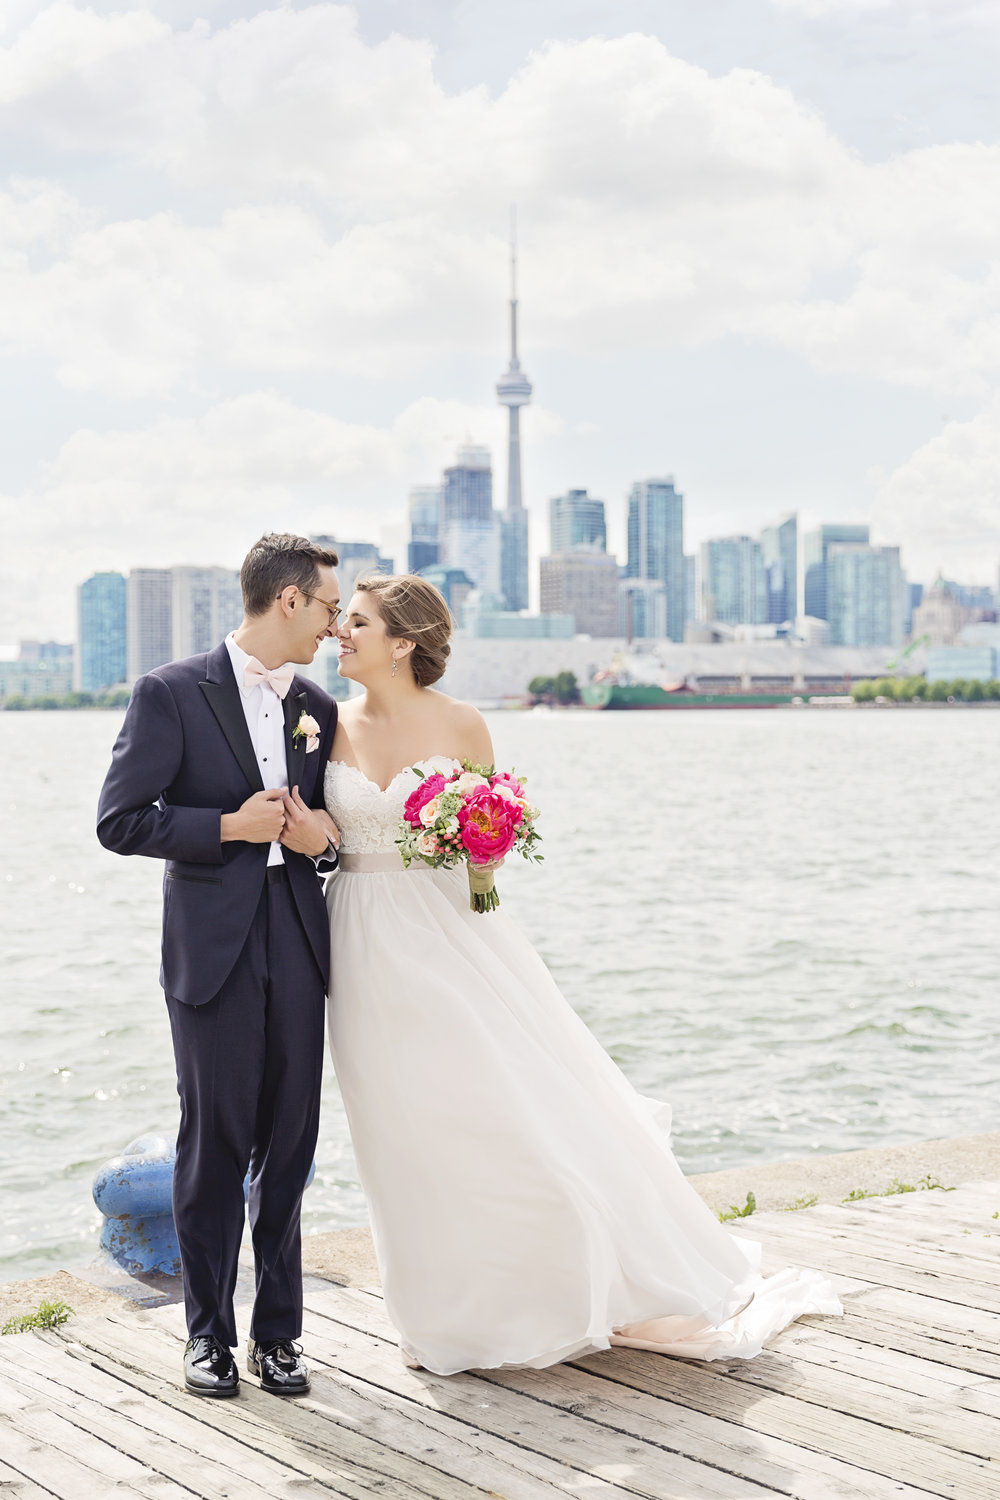 """I would definitely recommend Jasmine to any couple who wants a beautiful wedding day that they, their families and friends can enjoy stress free. She went above and beyond our expectations. She made our family and bridal party feel taken care and heard, helped other vendors solve their issues, through every detail, and added lots of extra little touches.""       Meghan & Adam Toronto, ON"